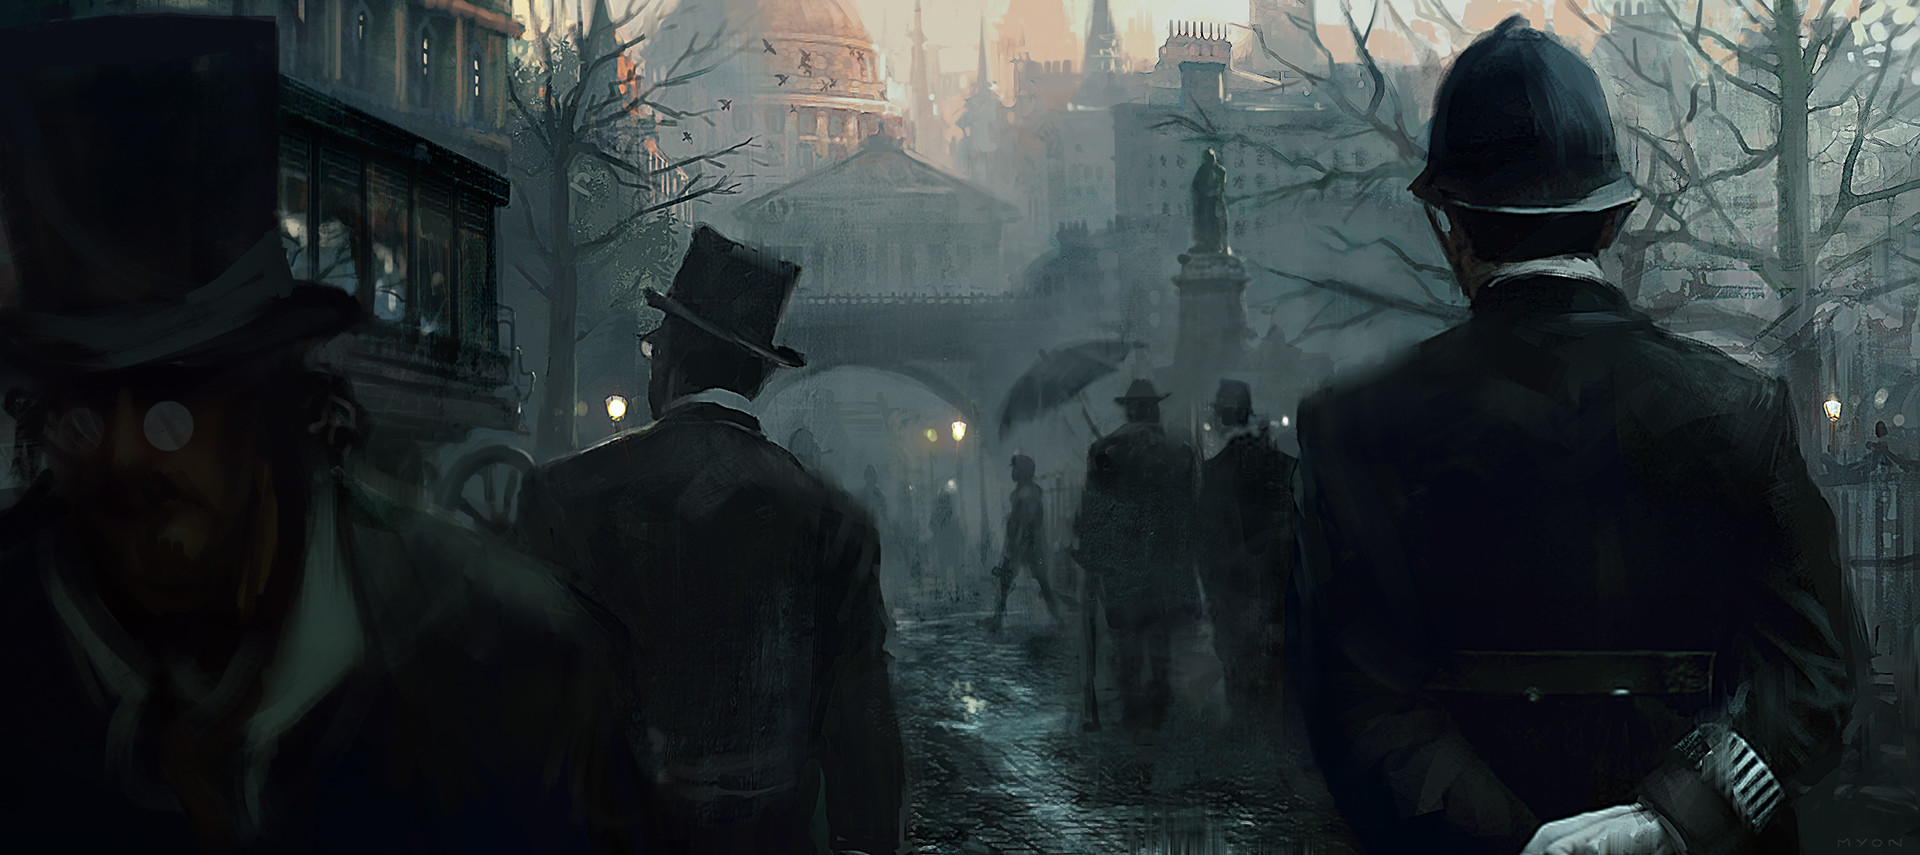 Assassin's Creed Syndicate: Jack the Ripper Concept Art by Morgan Yon